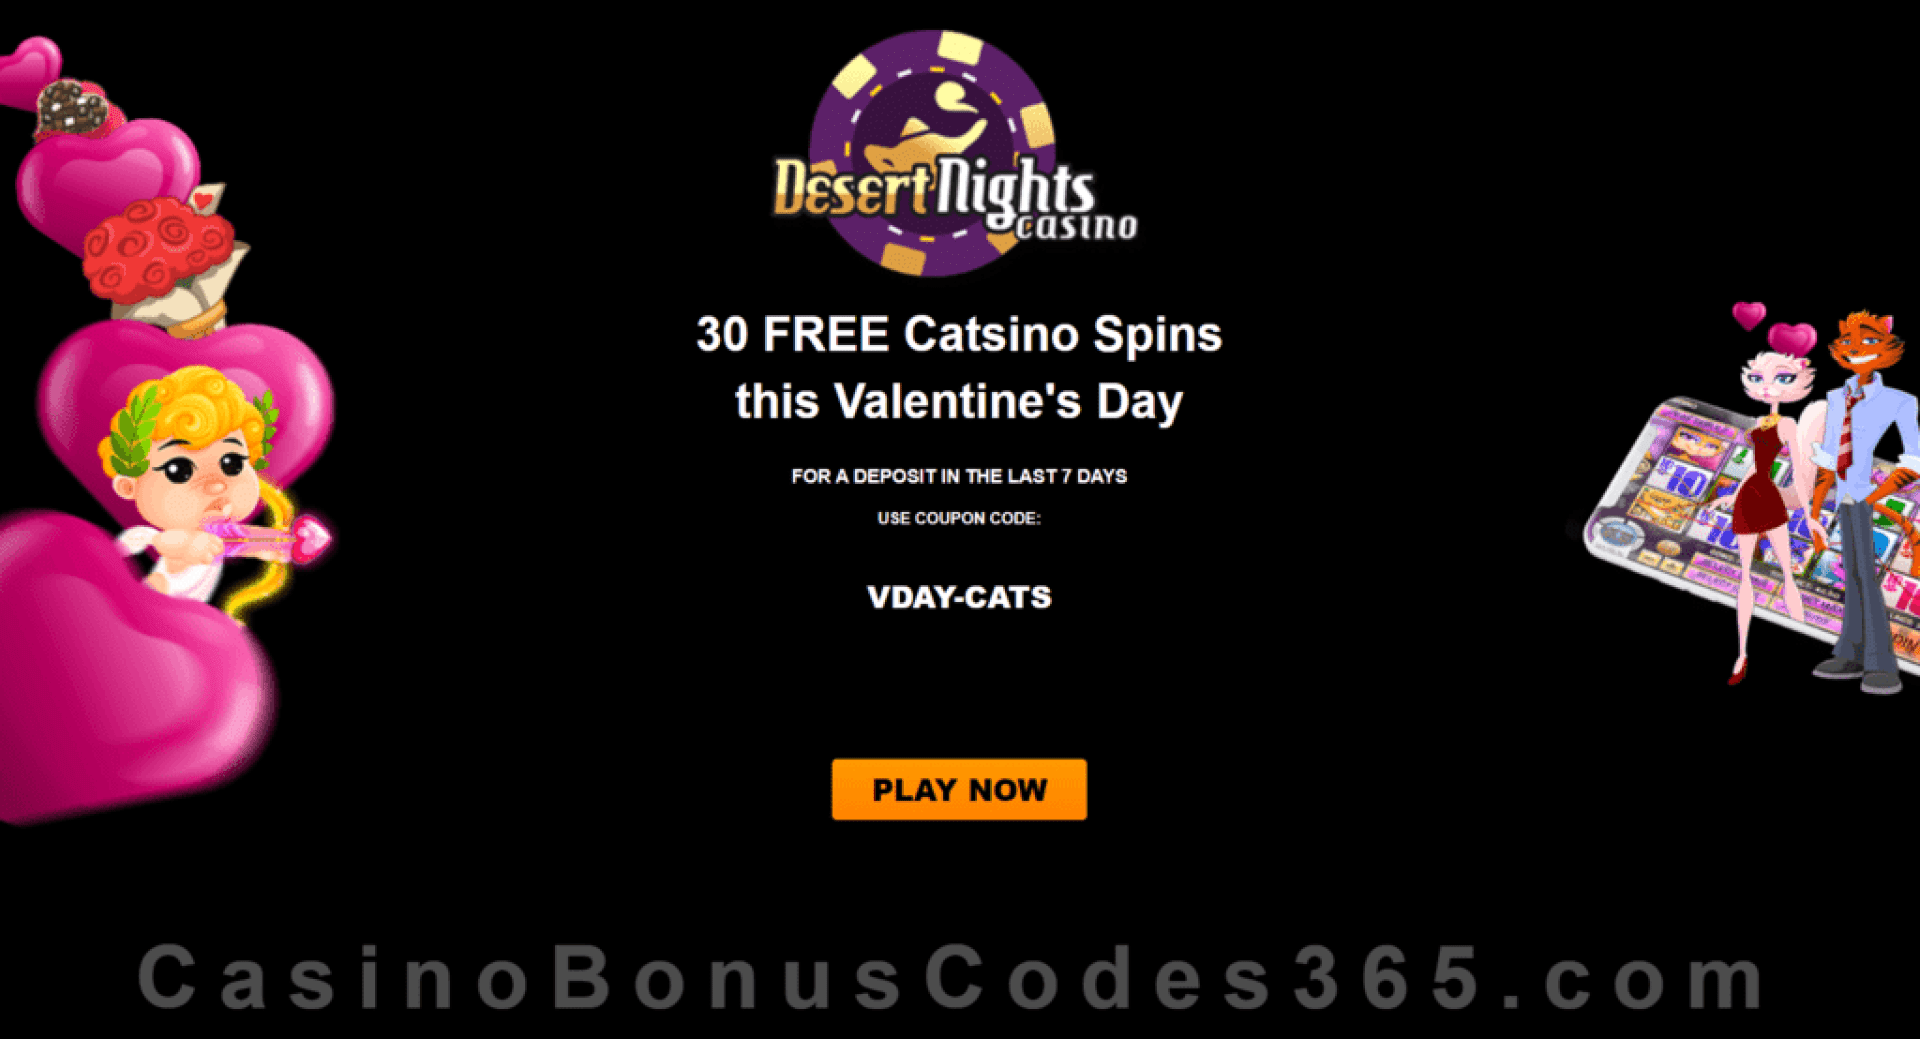 Desert Nights Casino 30 FREE Rival Gaming Catsino Spins Valentine's Day Offer